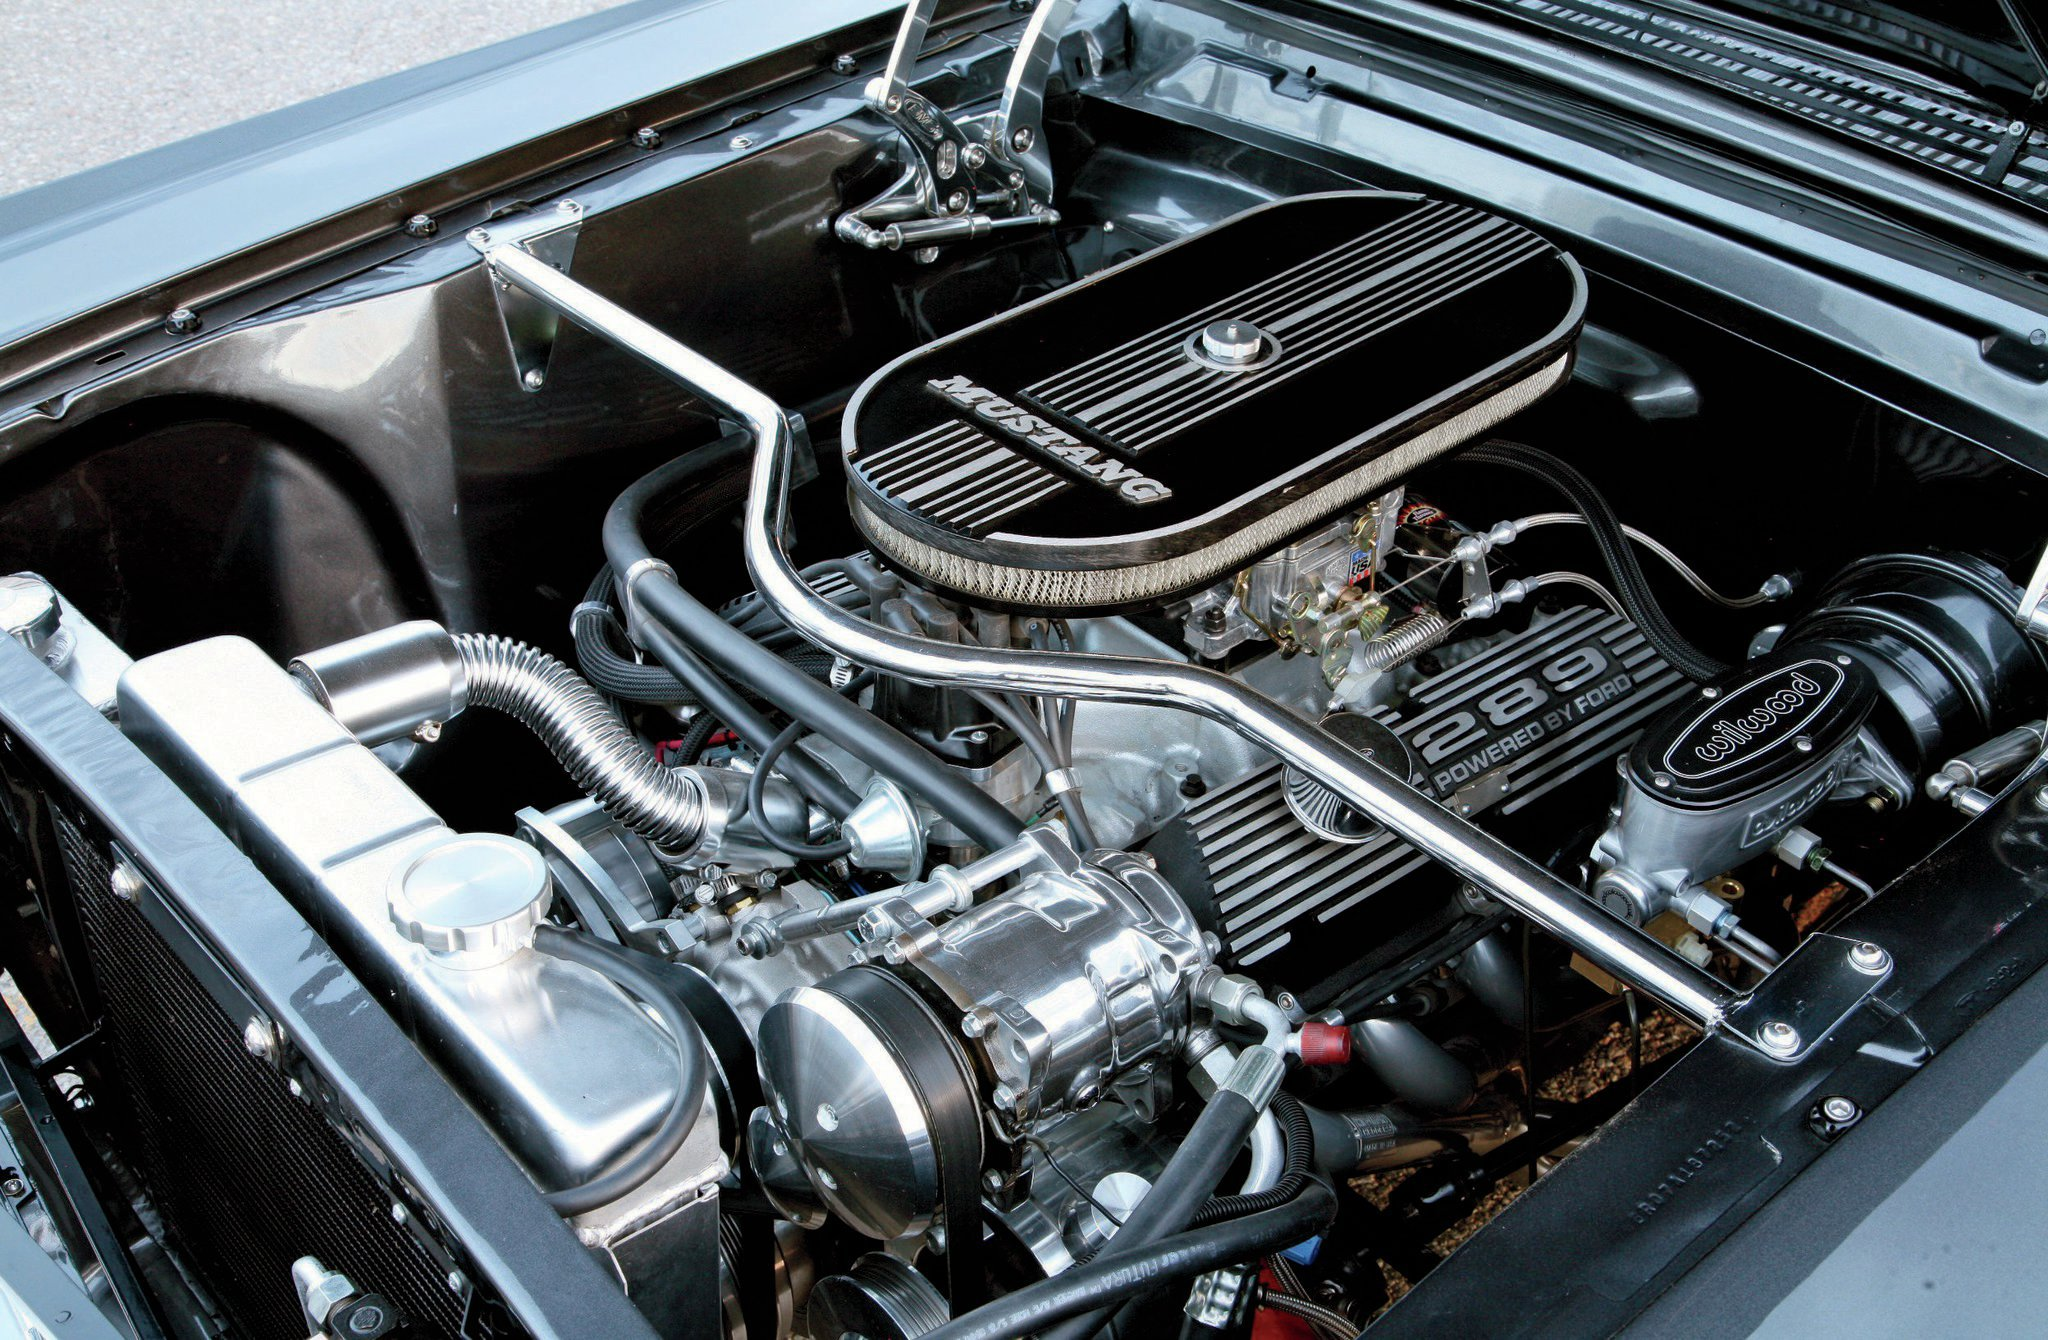 1966 Ford Mustang Coupe Engine View